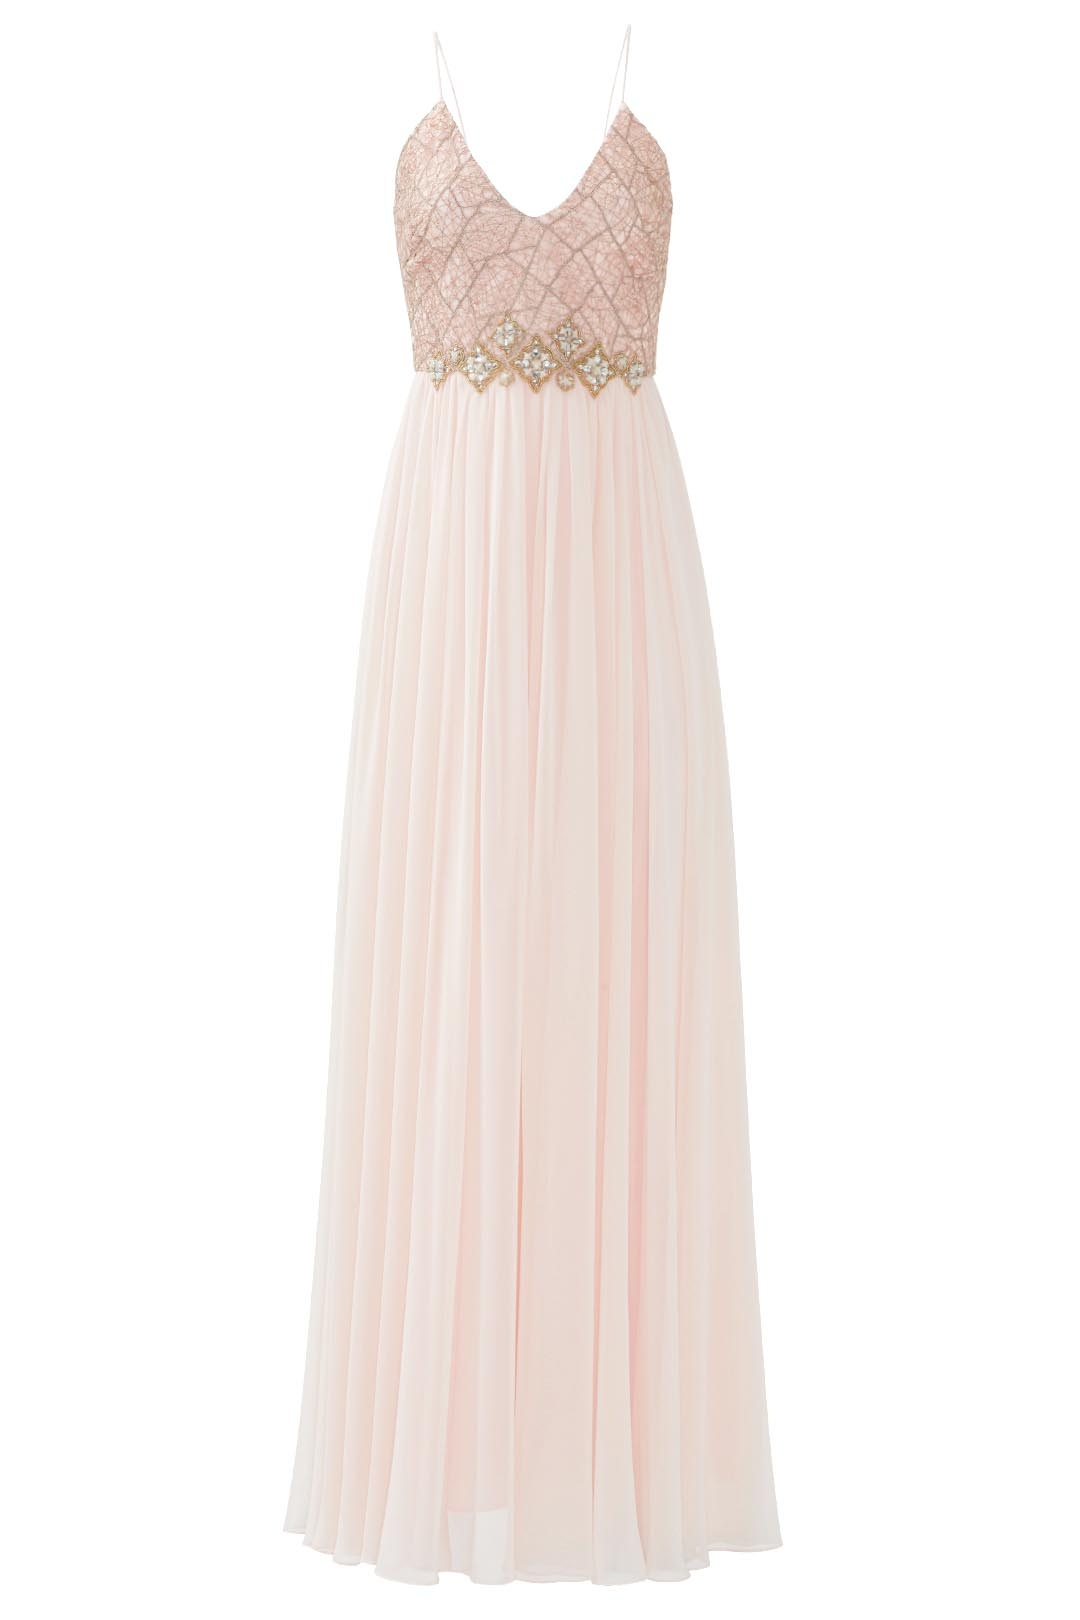 Badgley Mischka Blush Pink Women\'s Size 10 Embellished Lace Gown ...